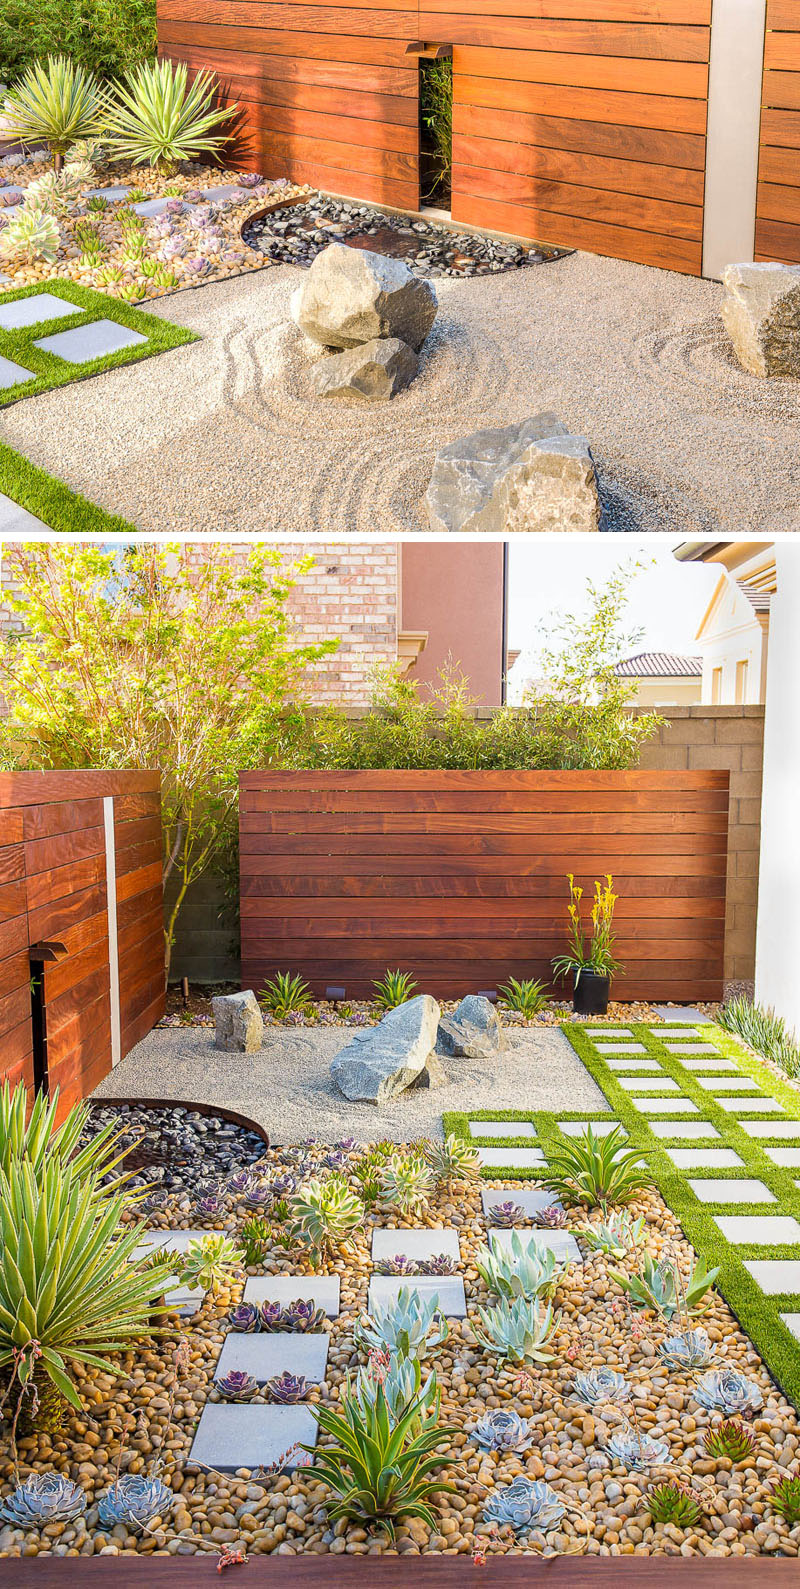 How to Turn Your Backyard into the Perfect Meditation Garden